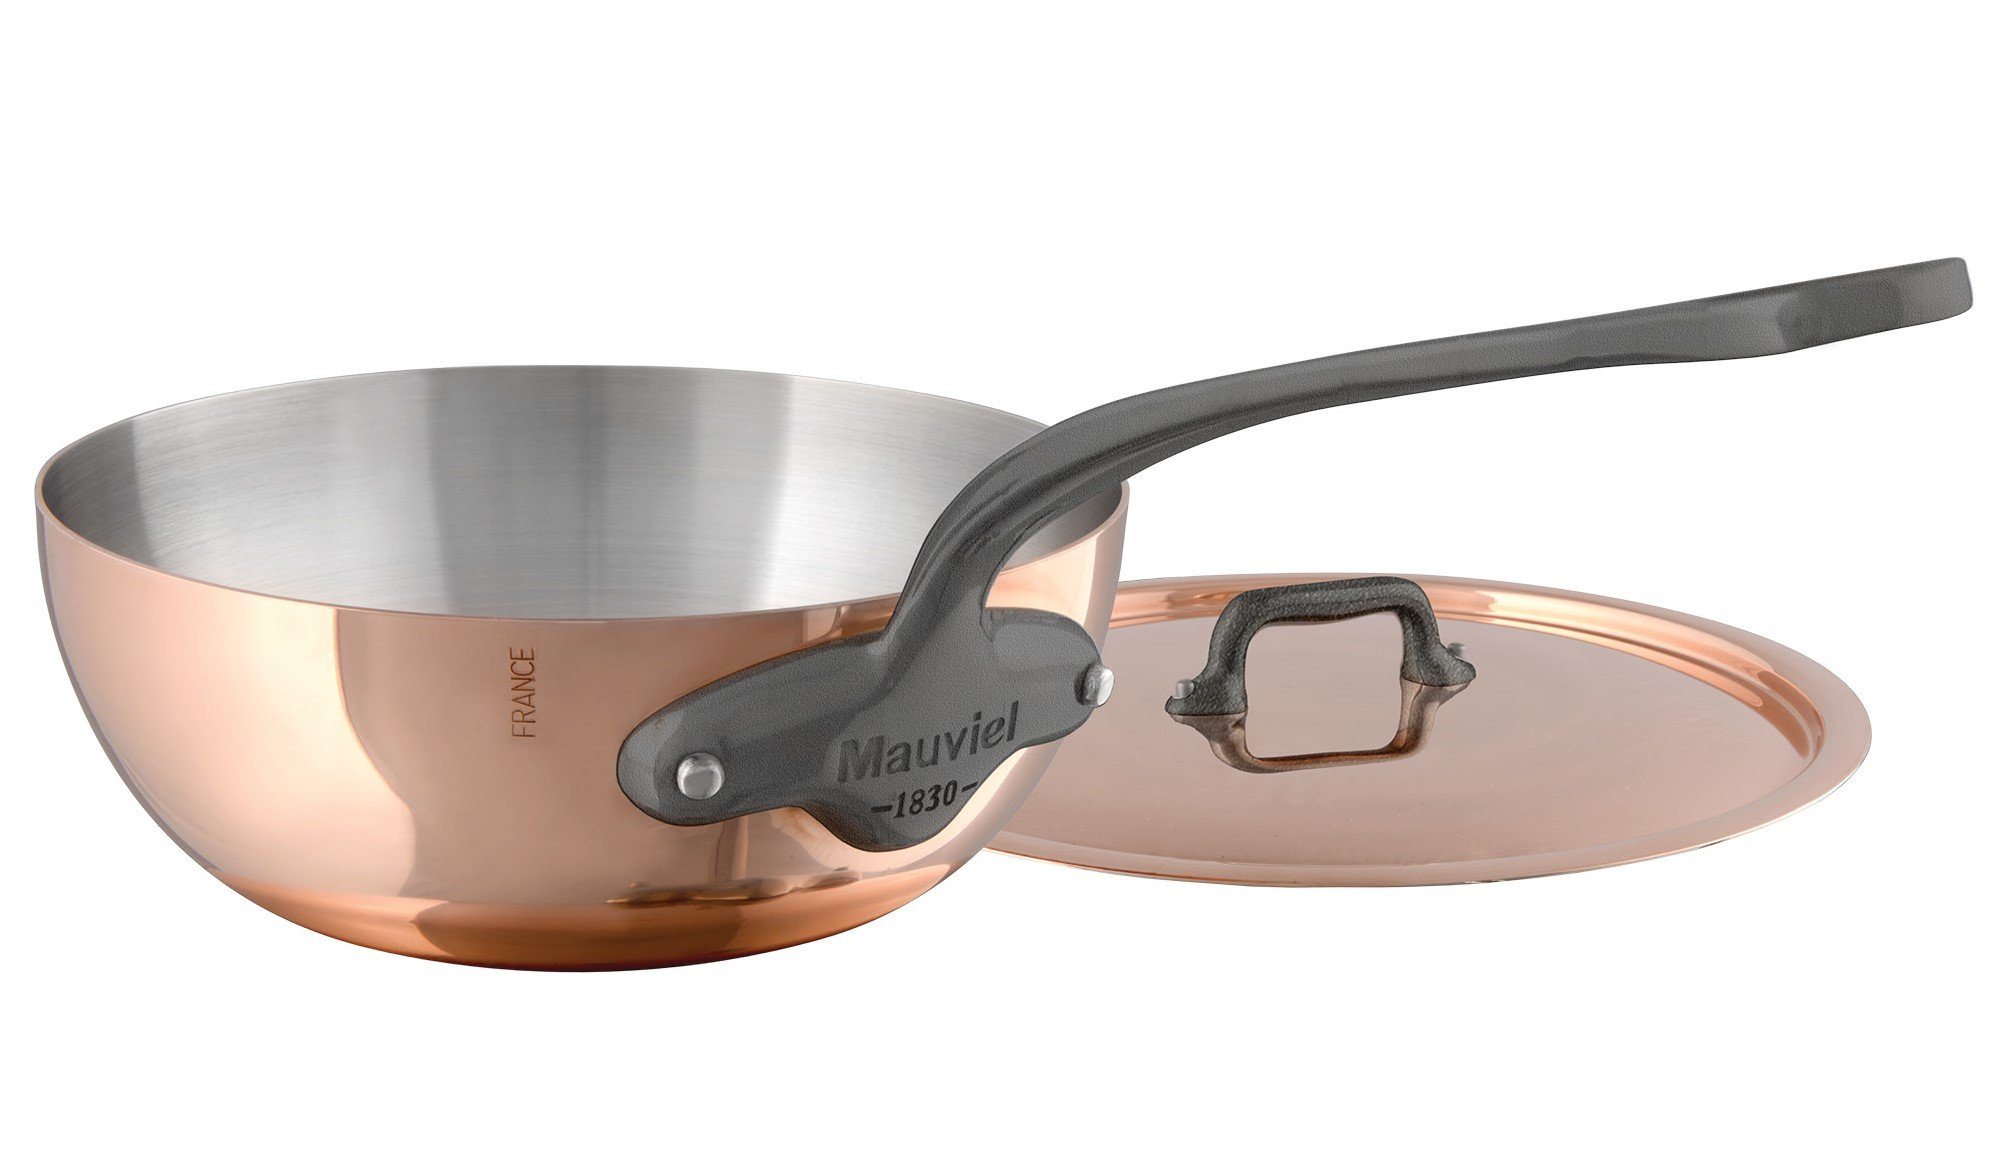 Mauviel Made In France MHeritage Copper 150s 6137.35 13.7-Inch Paella Pan with Cast Stainless Steel Handle